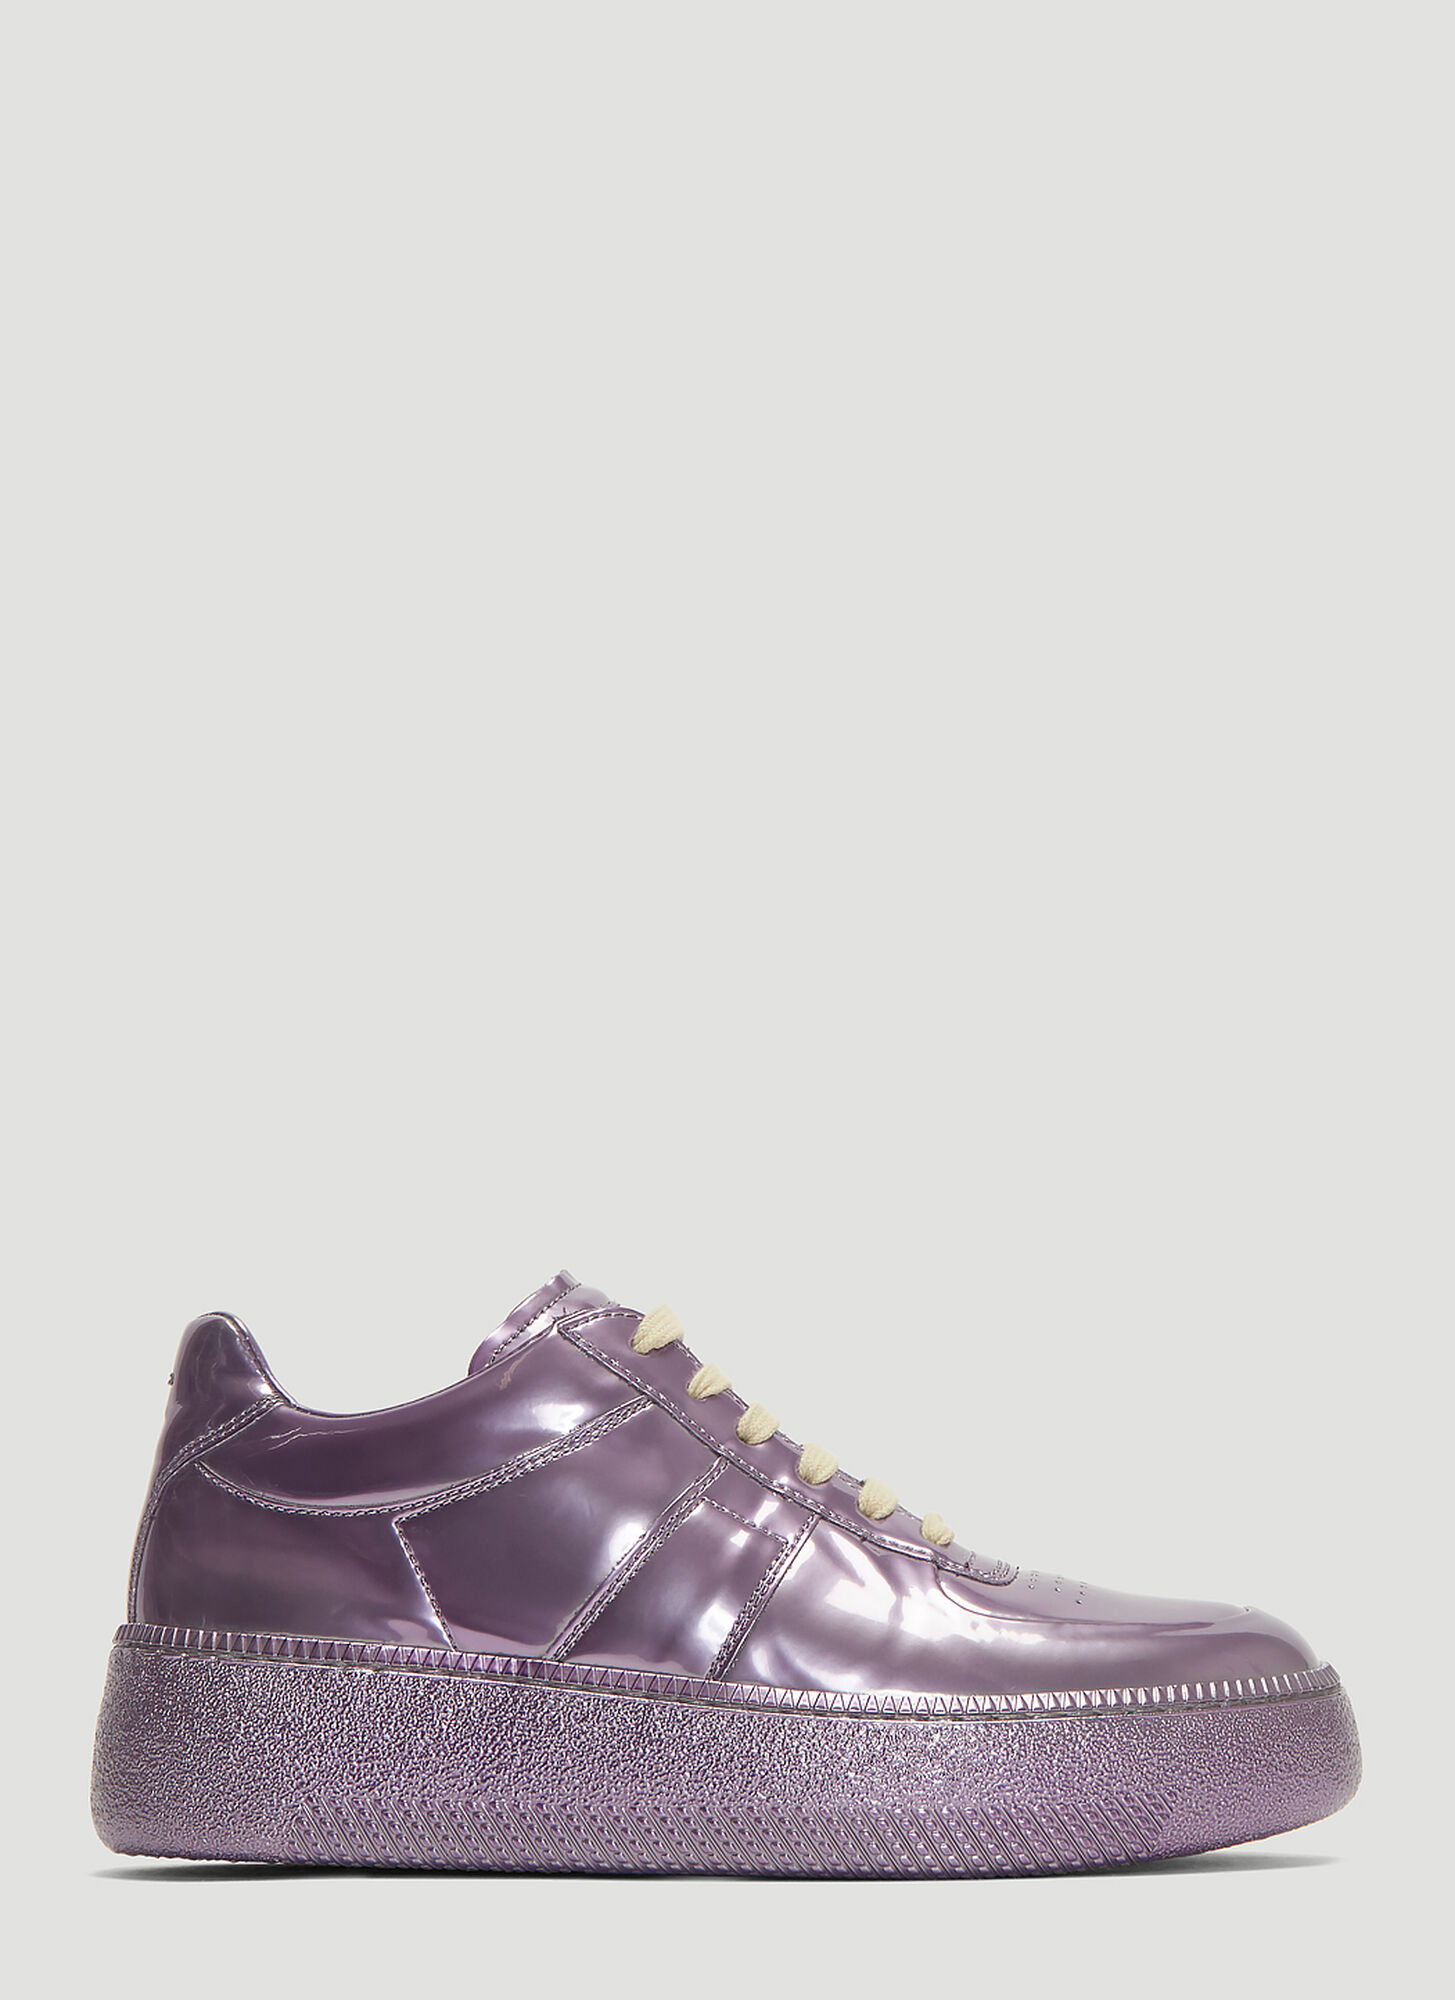 Maison Margiela Replica Metallic Sneakers in Purple